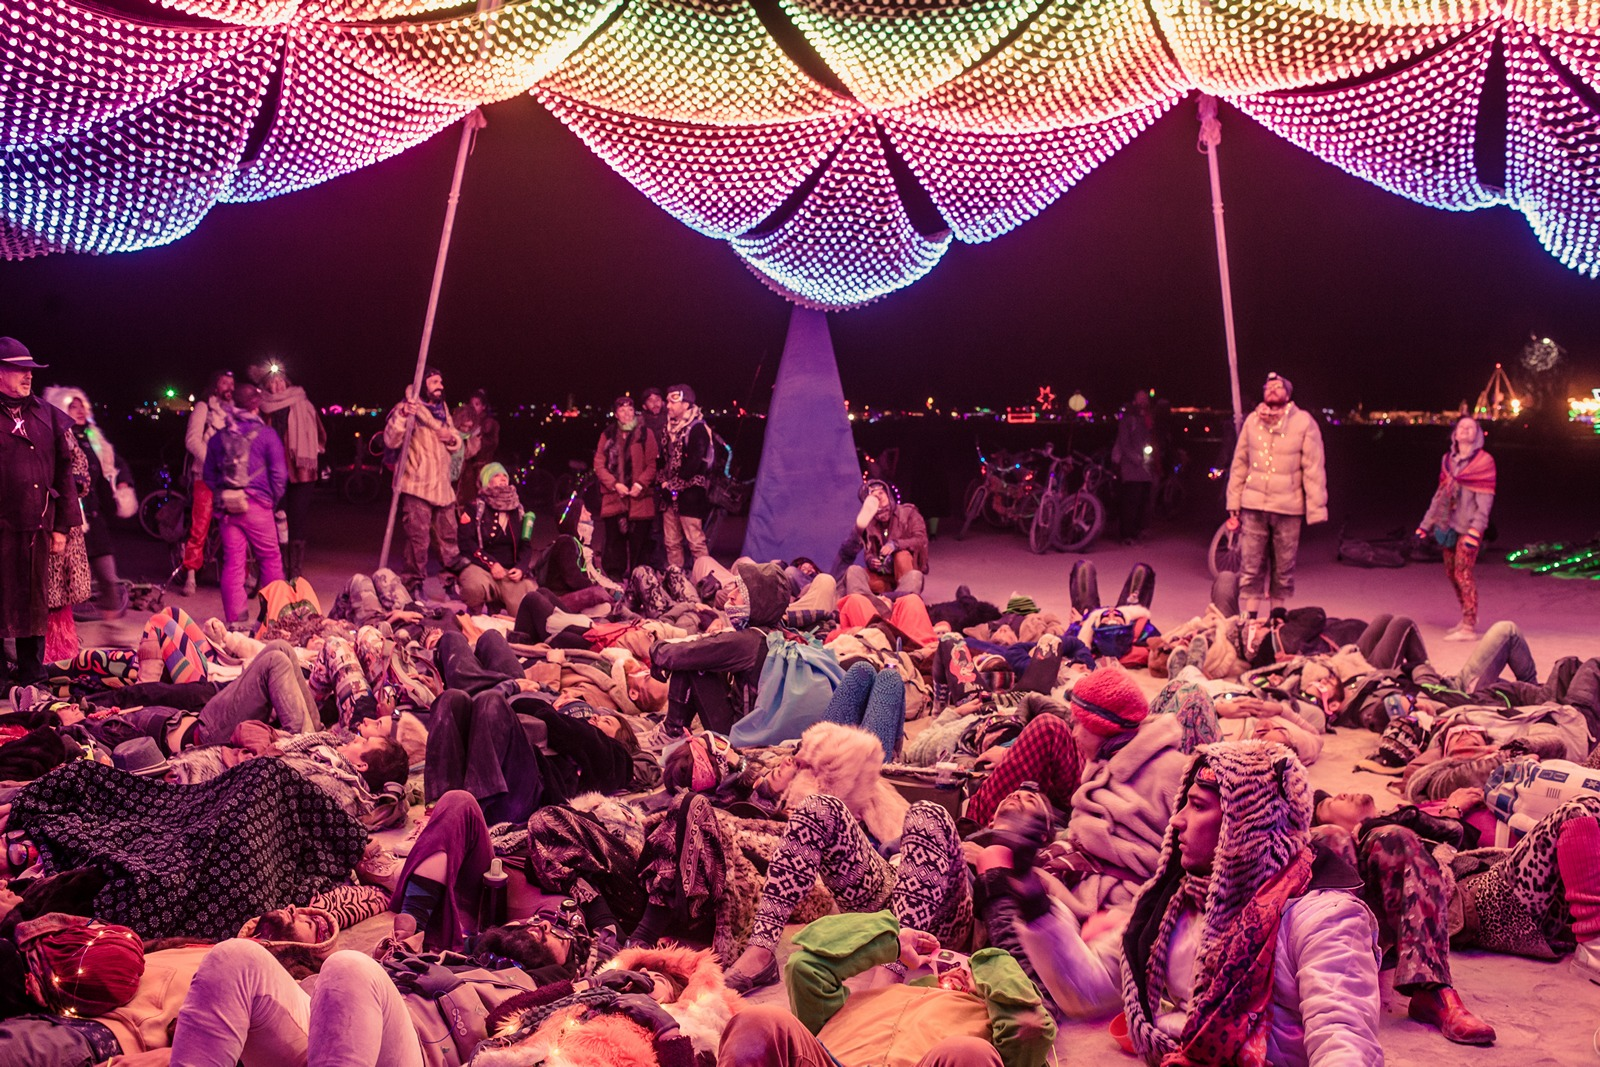 Burning Man - Relaxing watching changing lights